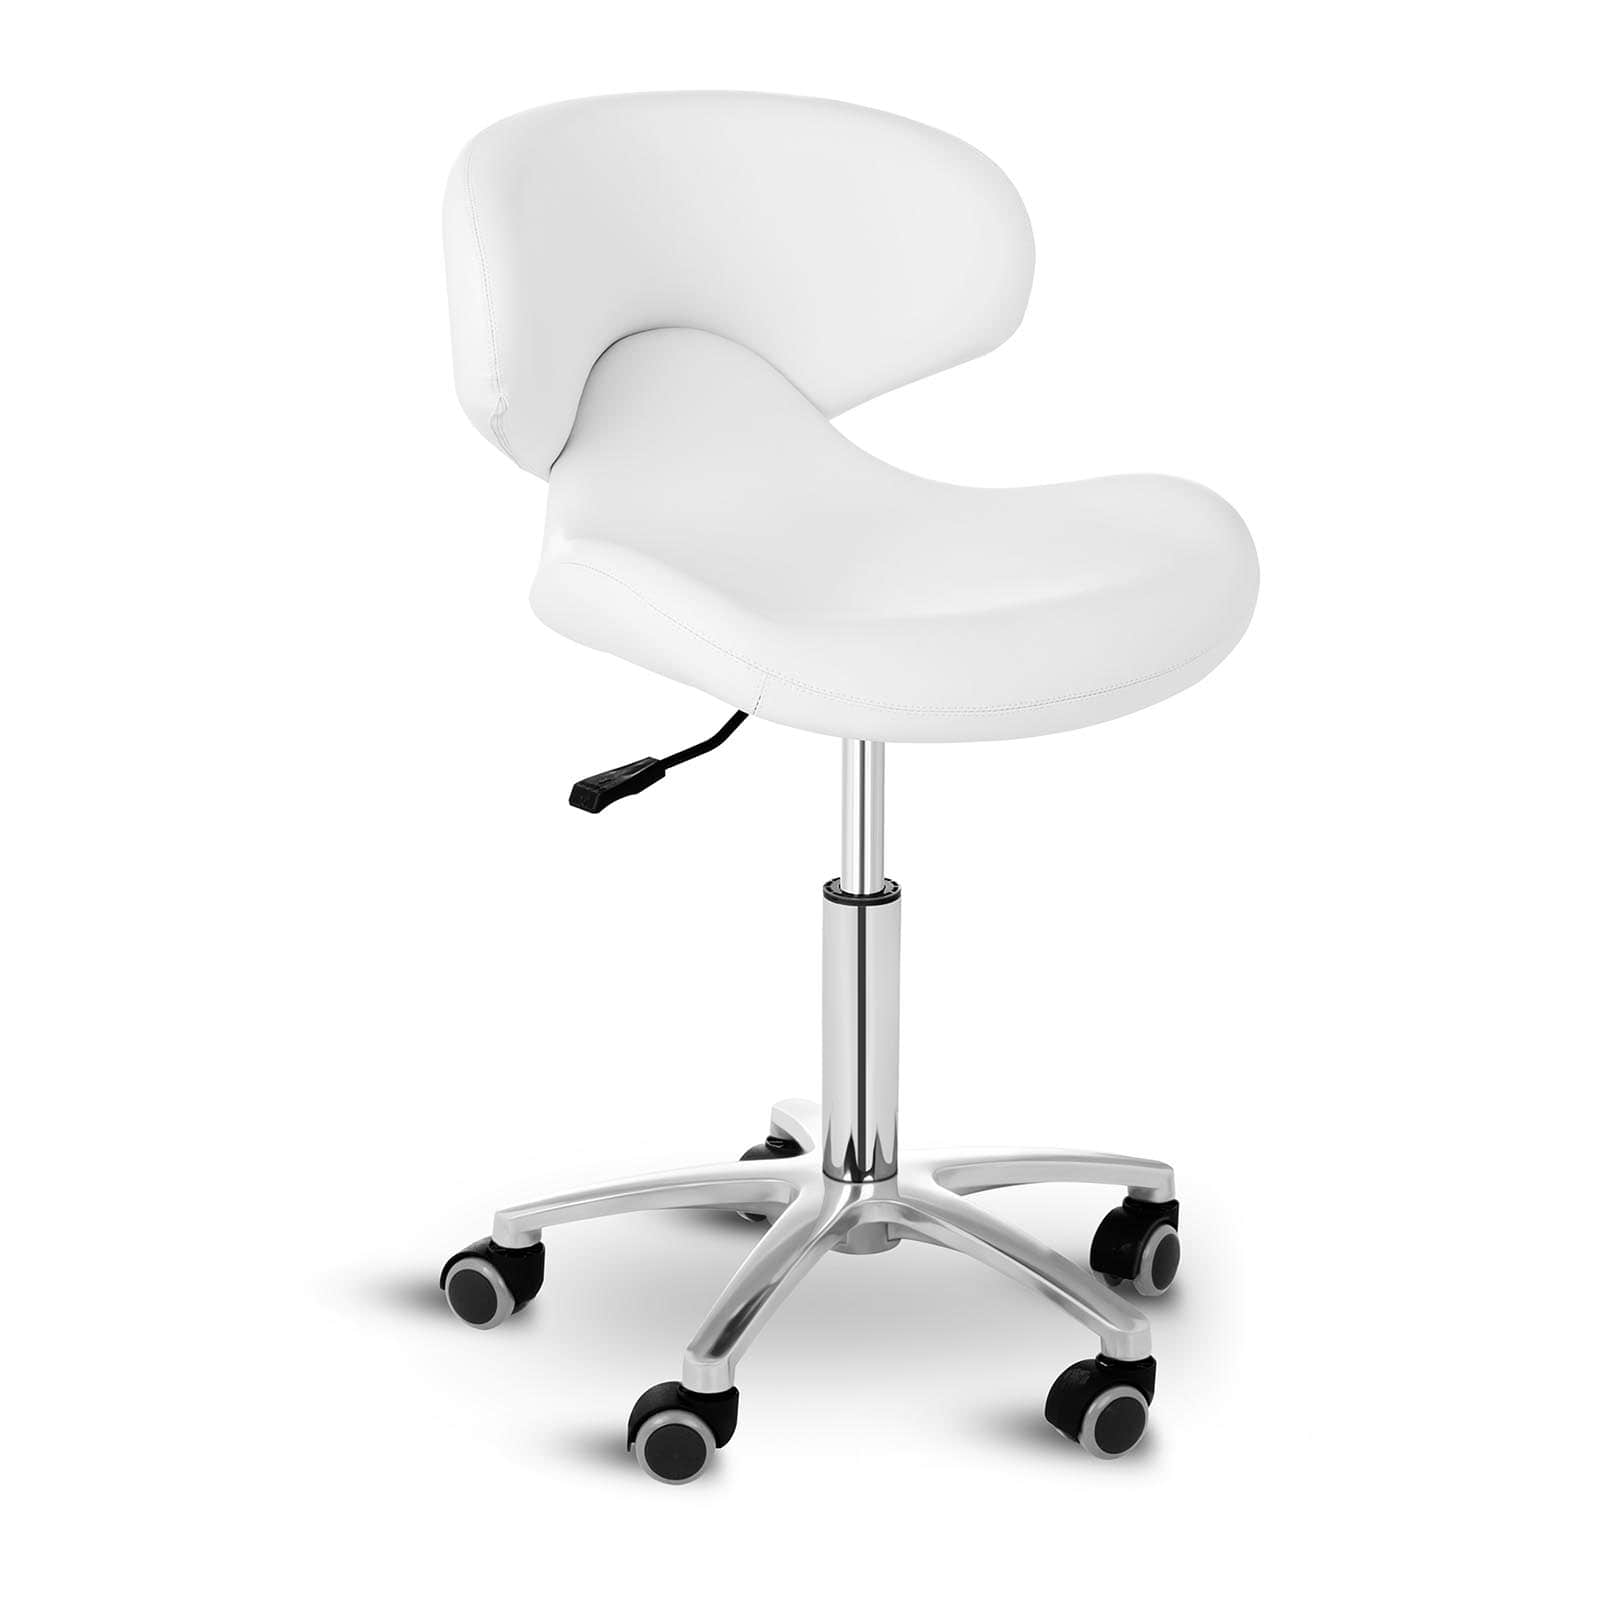 Hairdresser barber chairs & stools